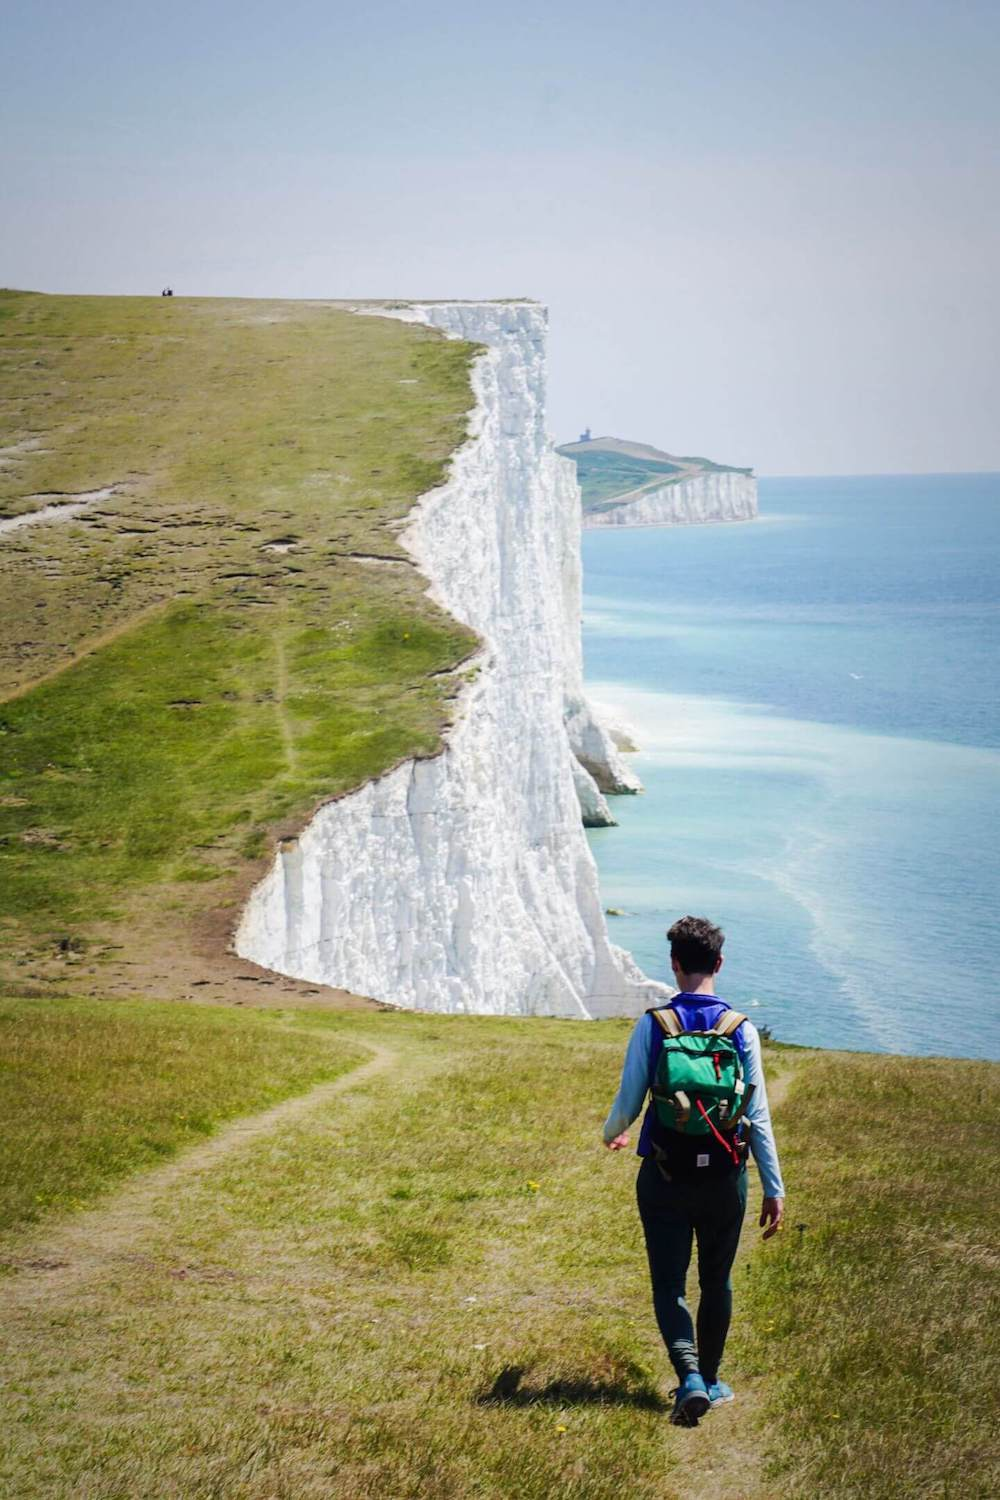 Hiking the Seven Sisters Cliffs, England